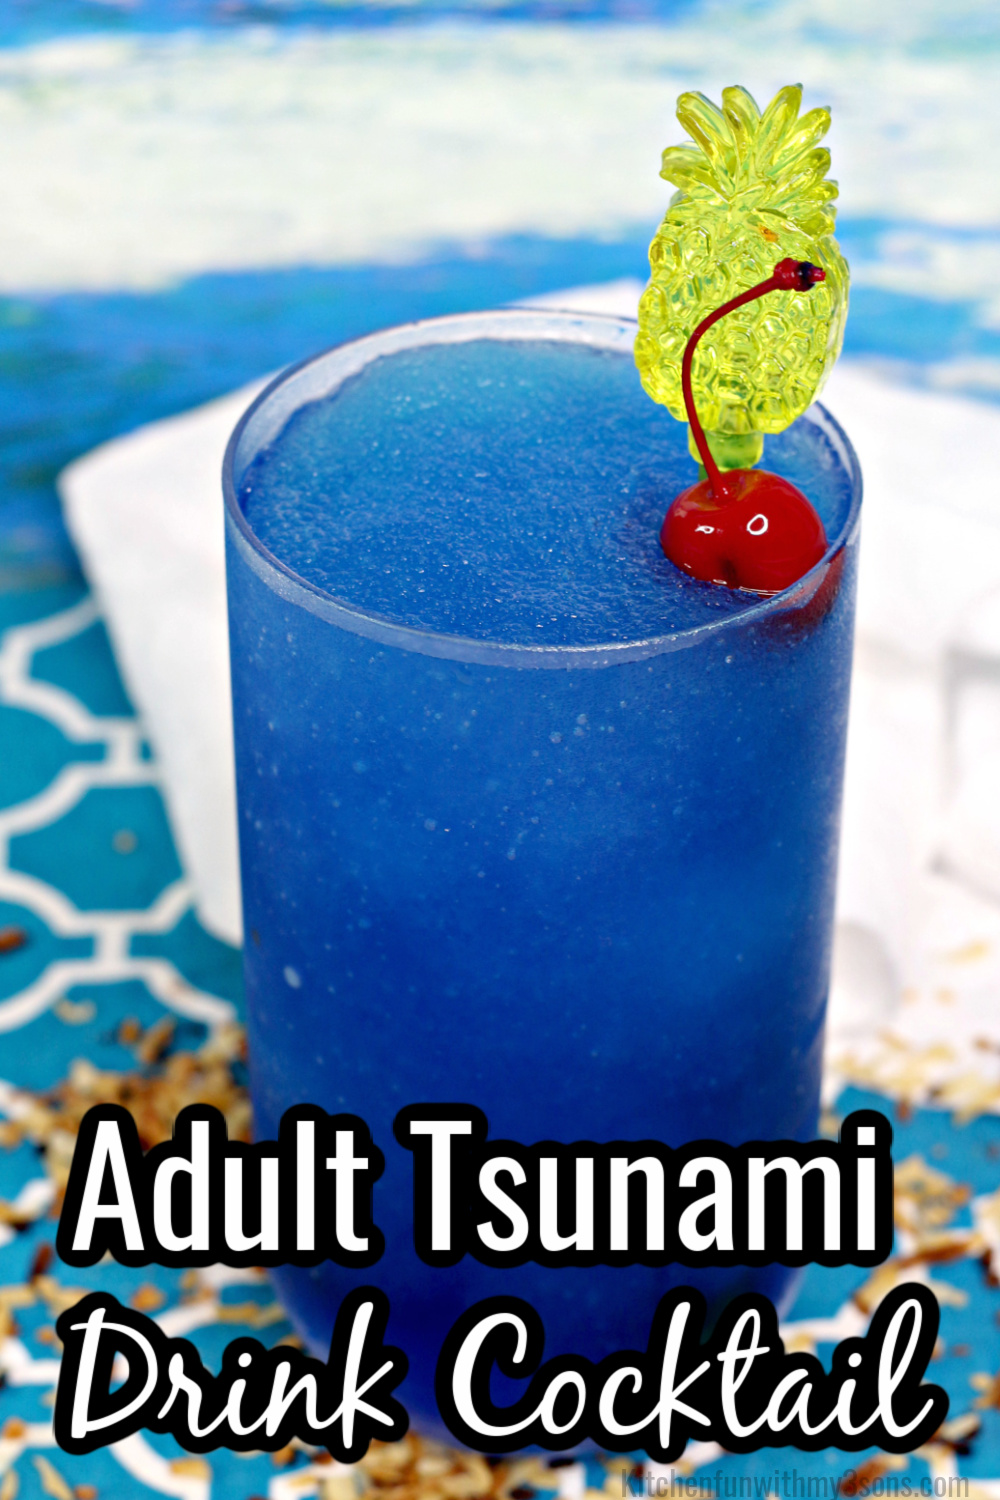 Adult Tsunami Drink Cocktail